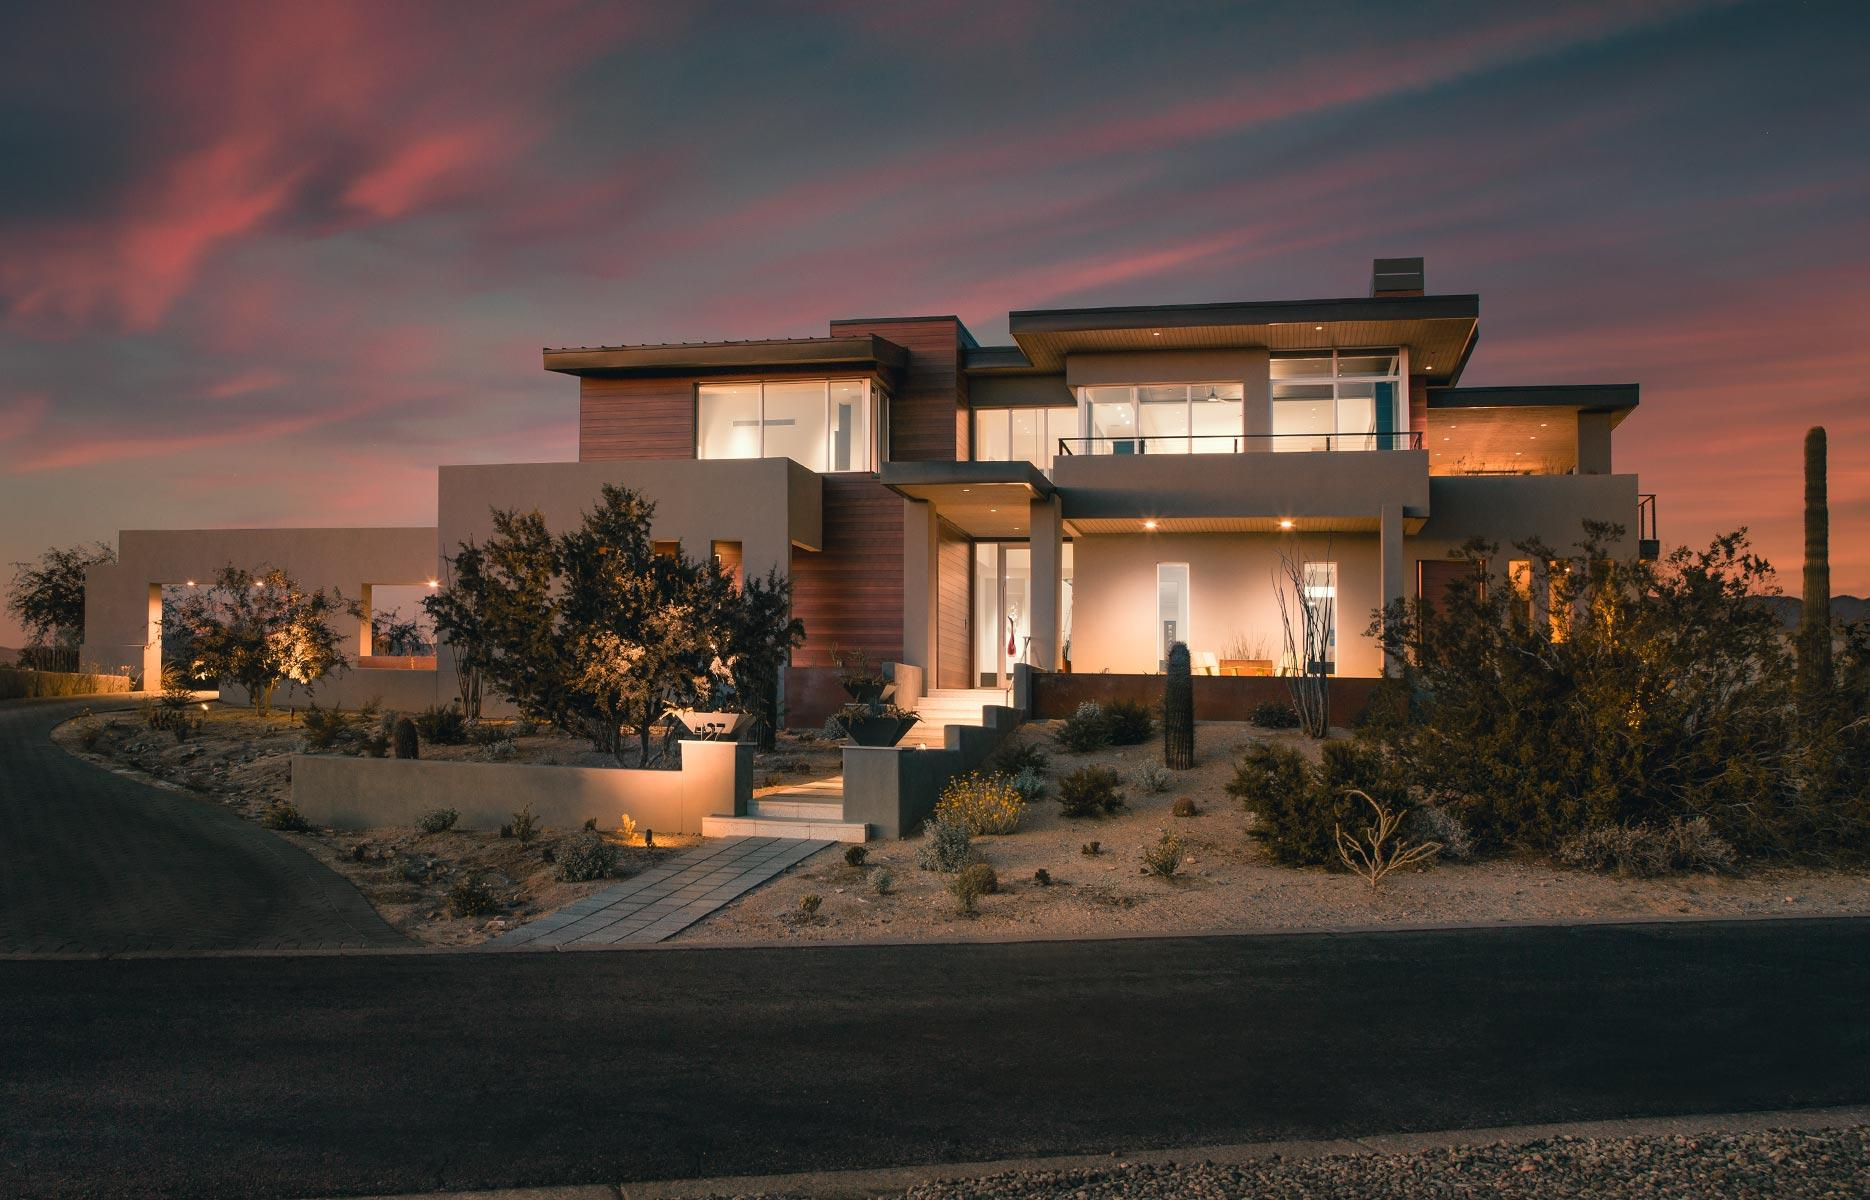 Architect Dale Gardon Discusses Designing His Own Home in Scottsdale